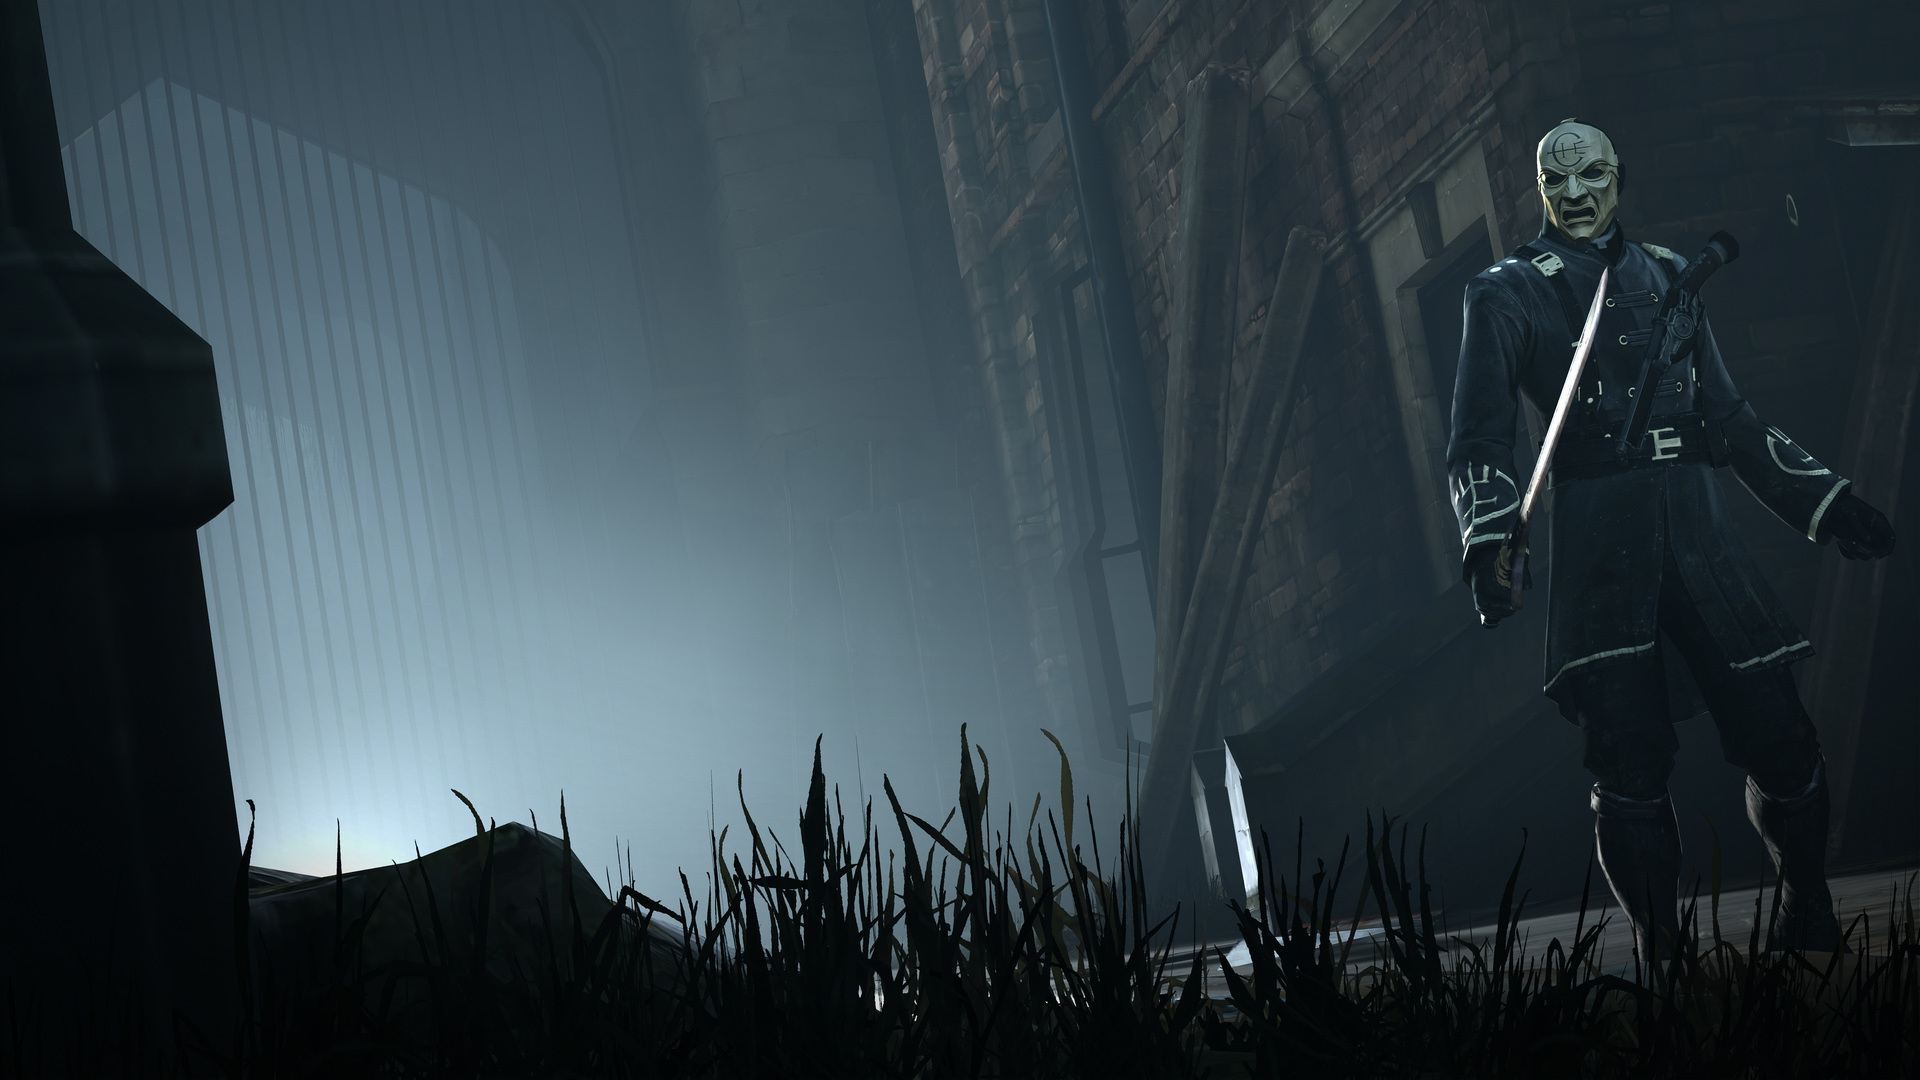 205100_screenshots_dishonored 2013-07-09 15-03-53-62.jpg - Dishonored